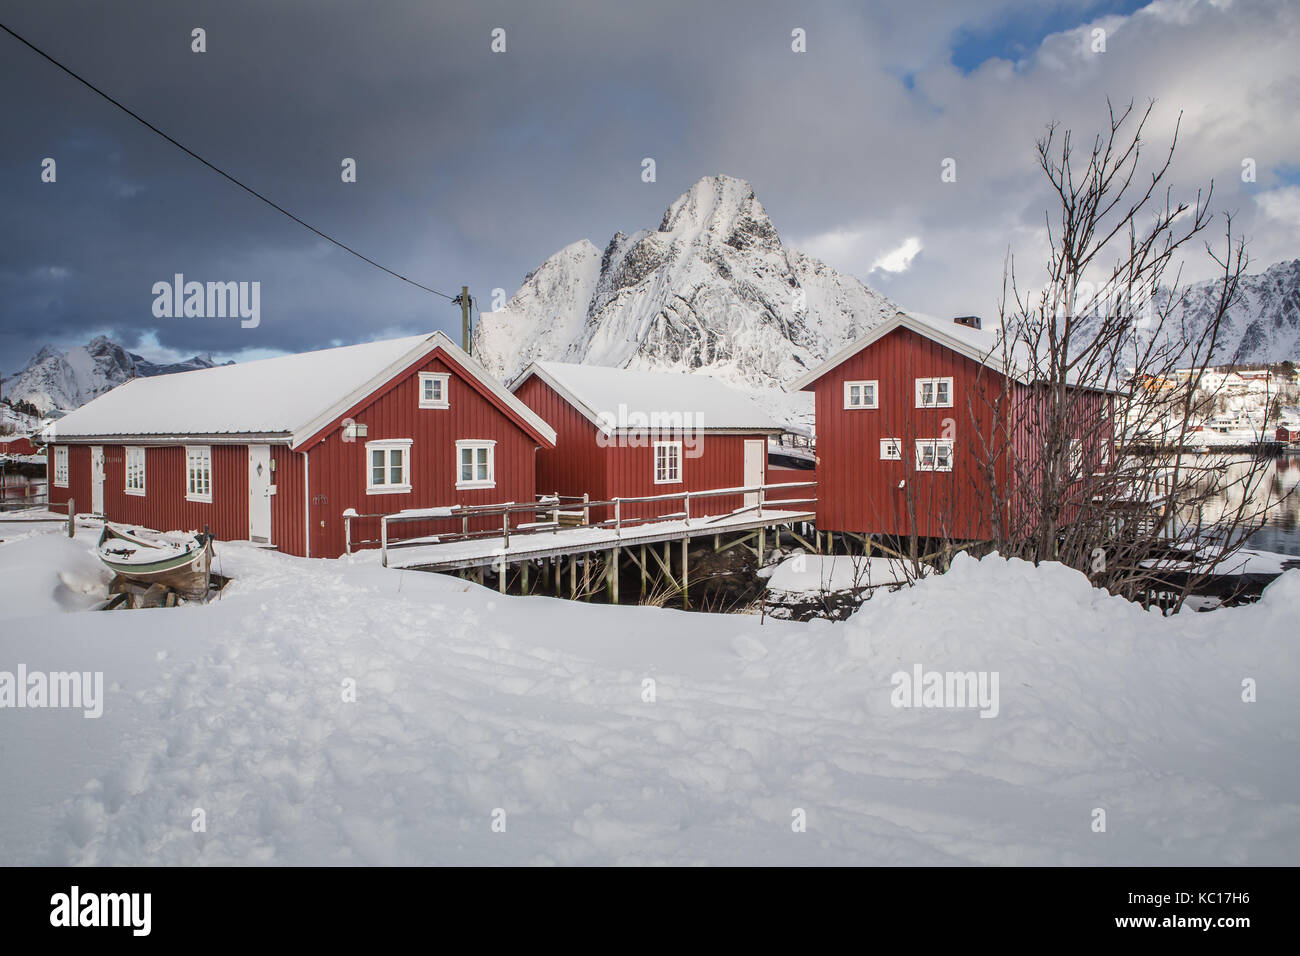 Typical houses of fishermen called Rorbu, Lofoten islands, Norway Stock Photo